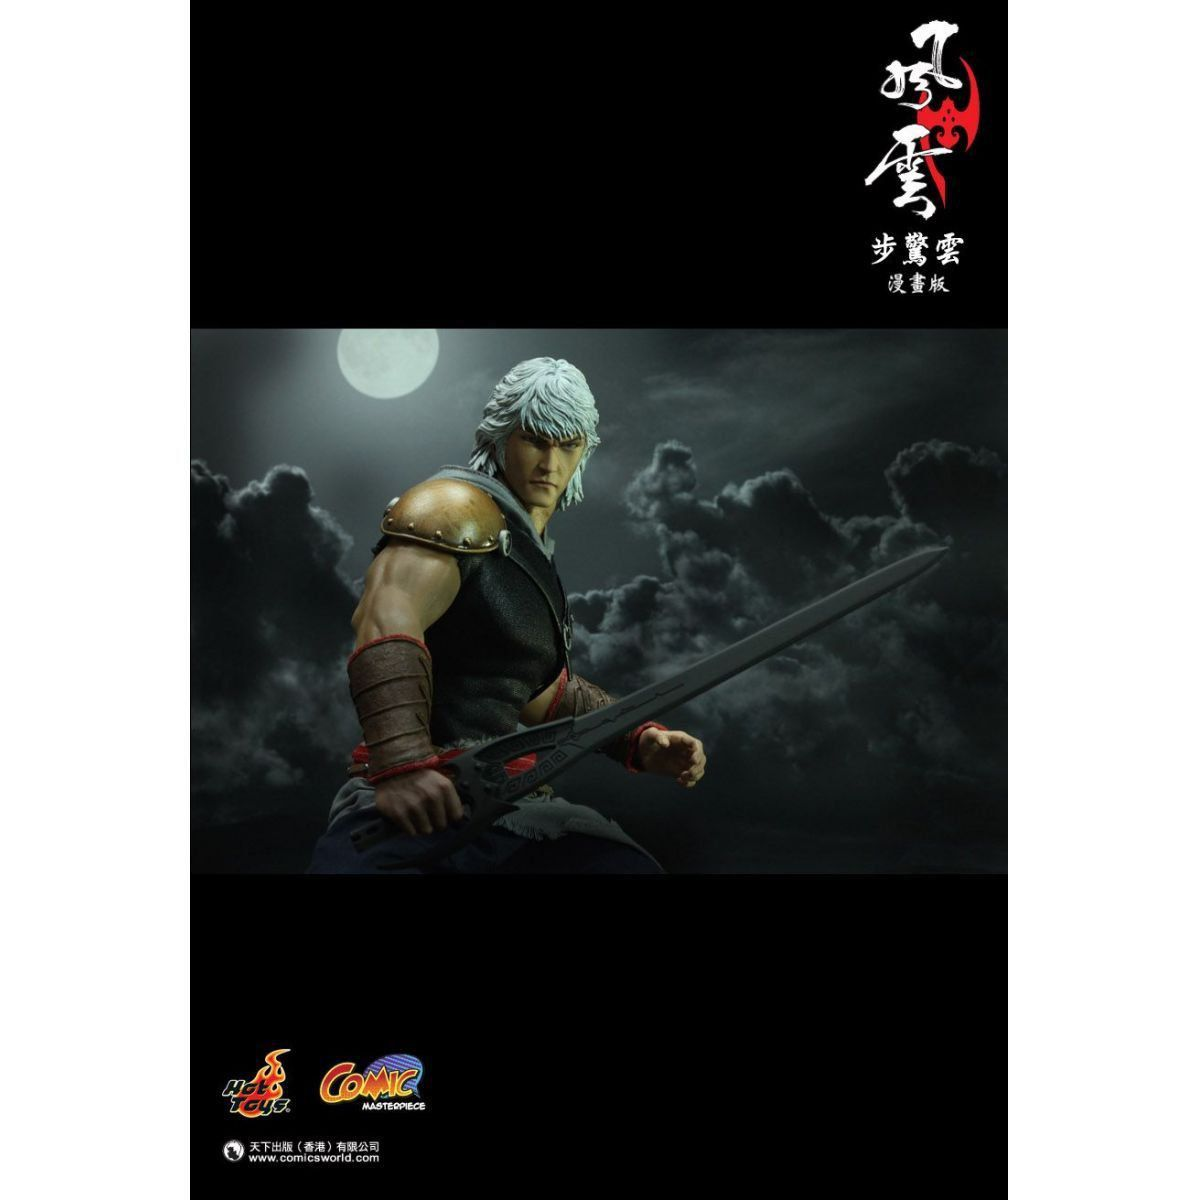 Boneco Cloud: Os Cavaleiros da Tempestade (The Storm Riders) Escala 1/6 - Hot Toys - CD